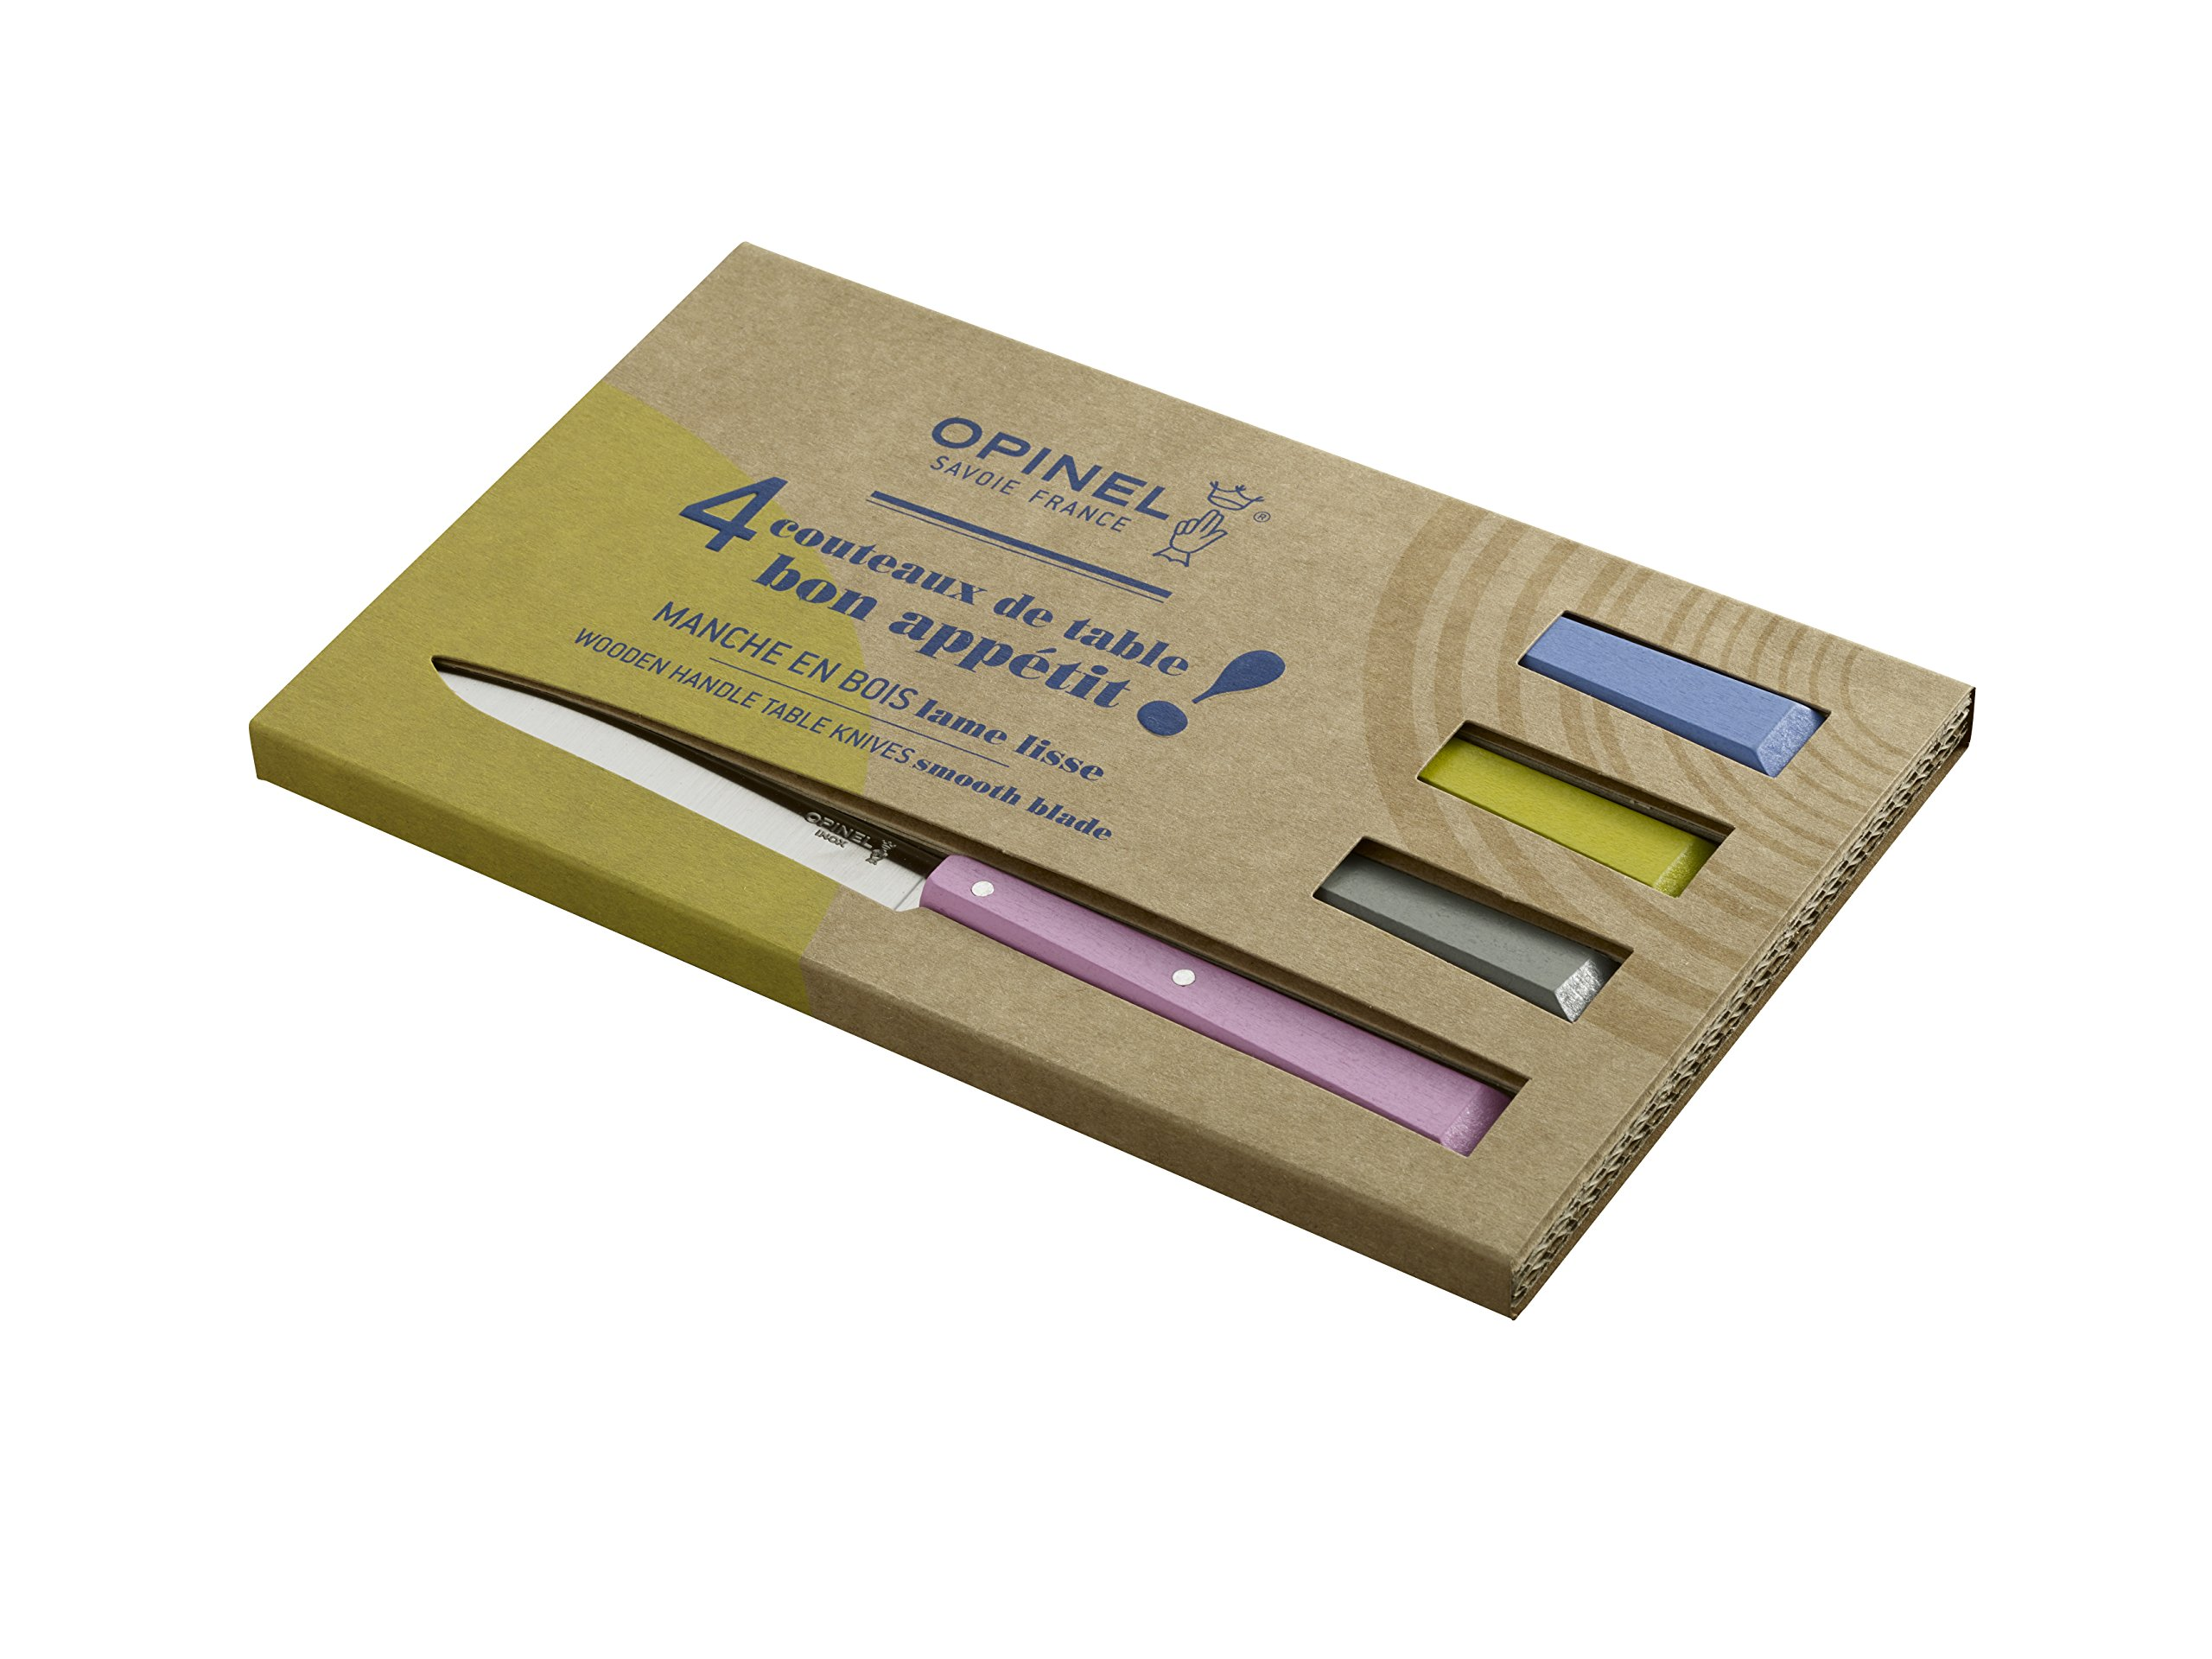 Opinel No 125 Bon Appetit 4 Piece Table Knife Set, Countryside by Opinel (Image #2)